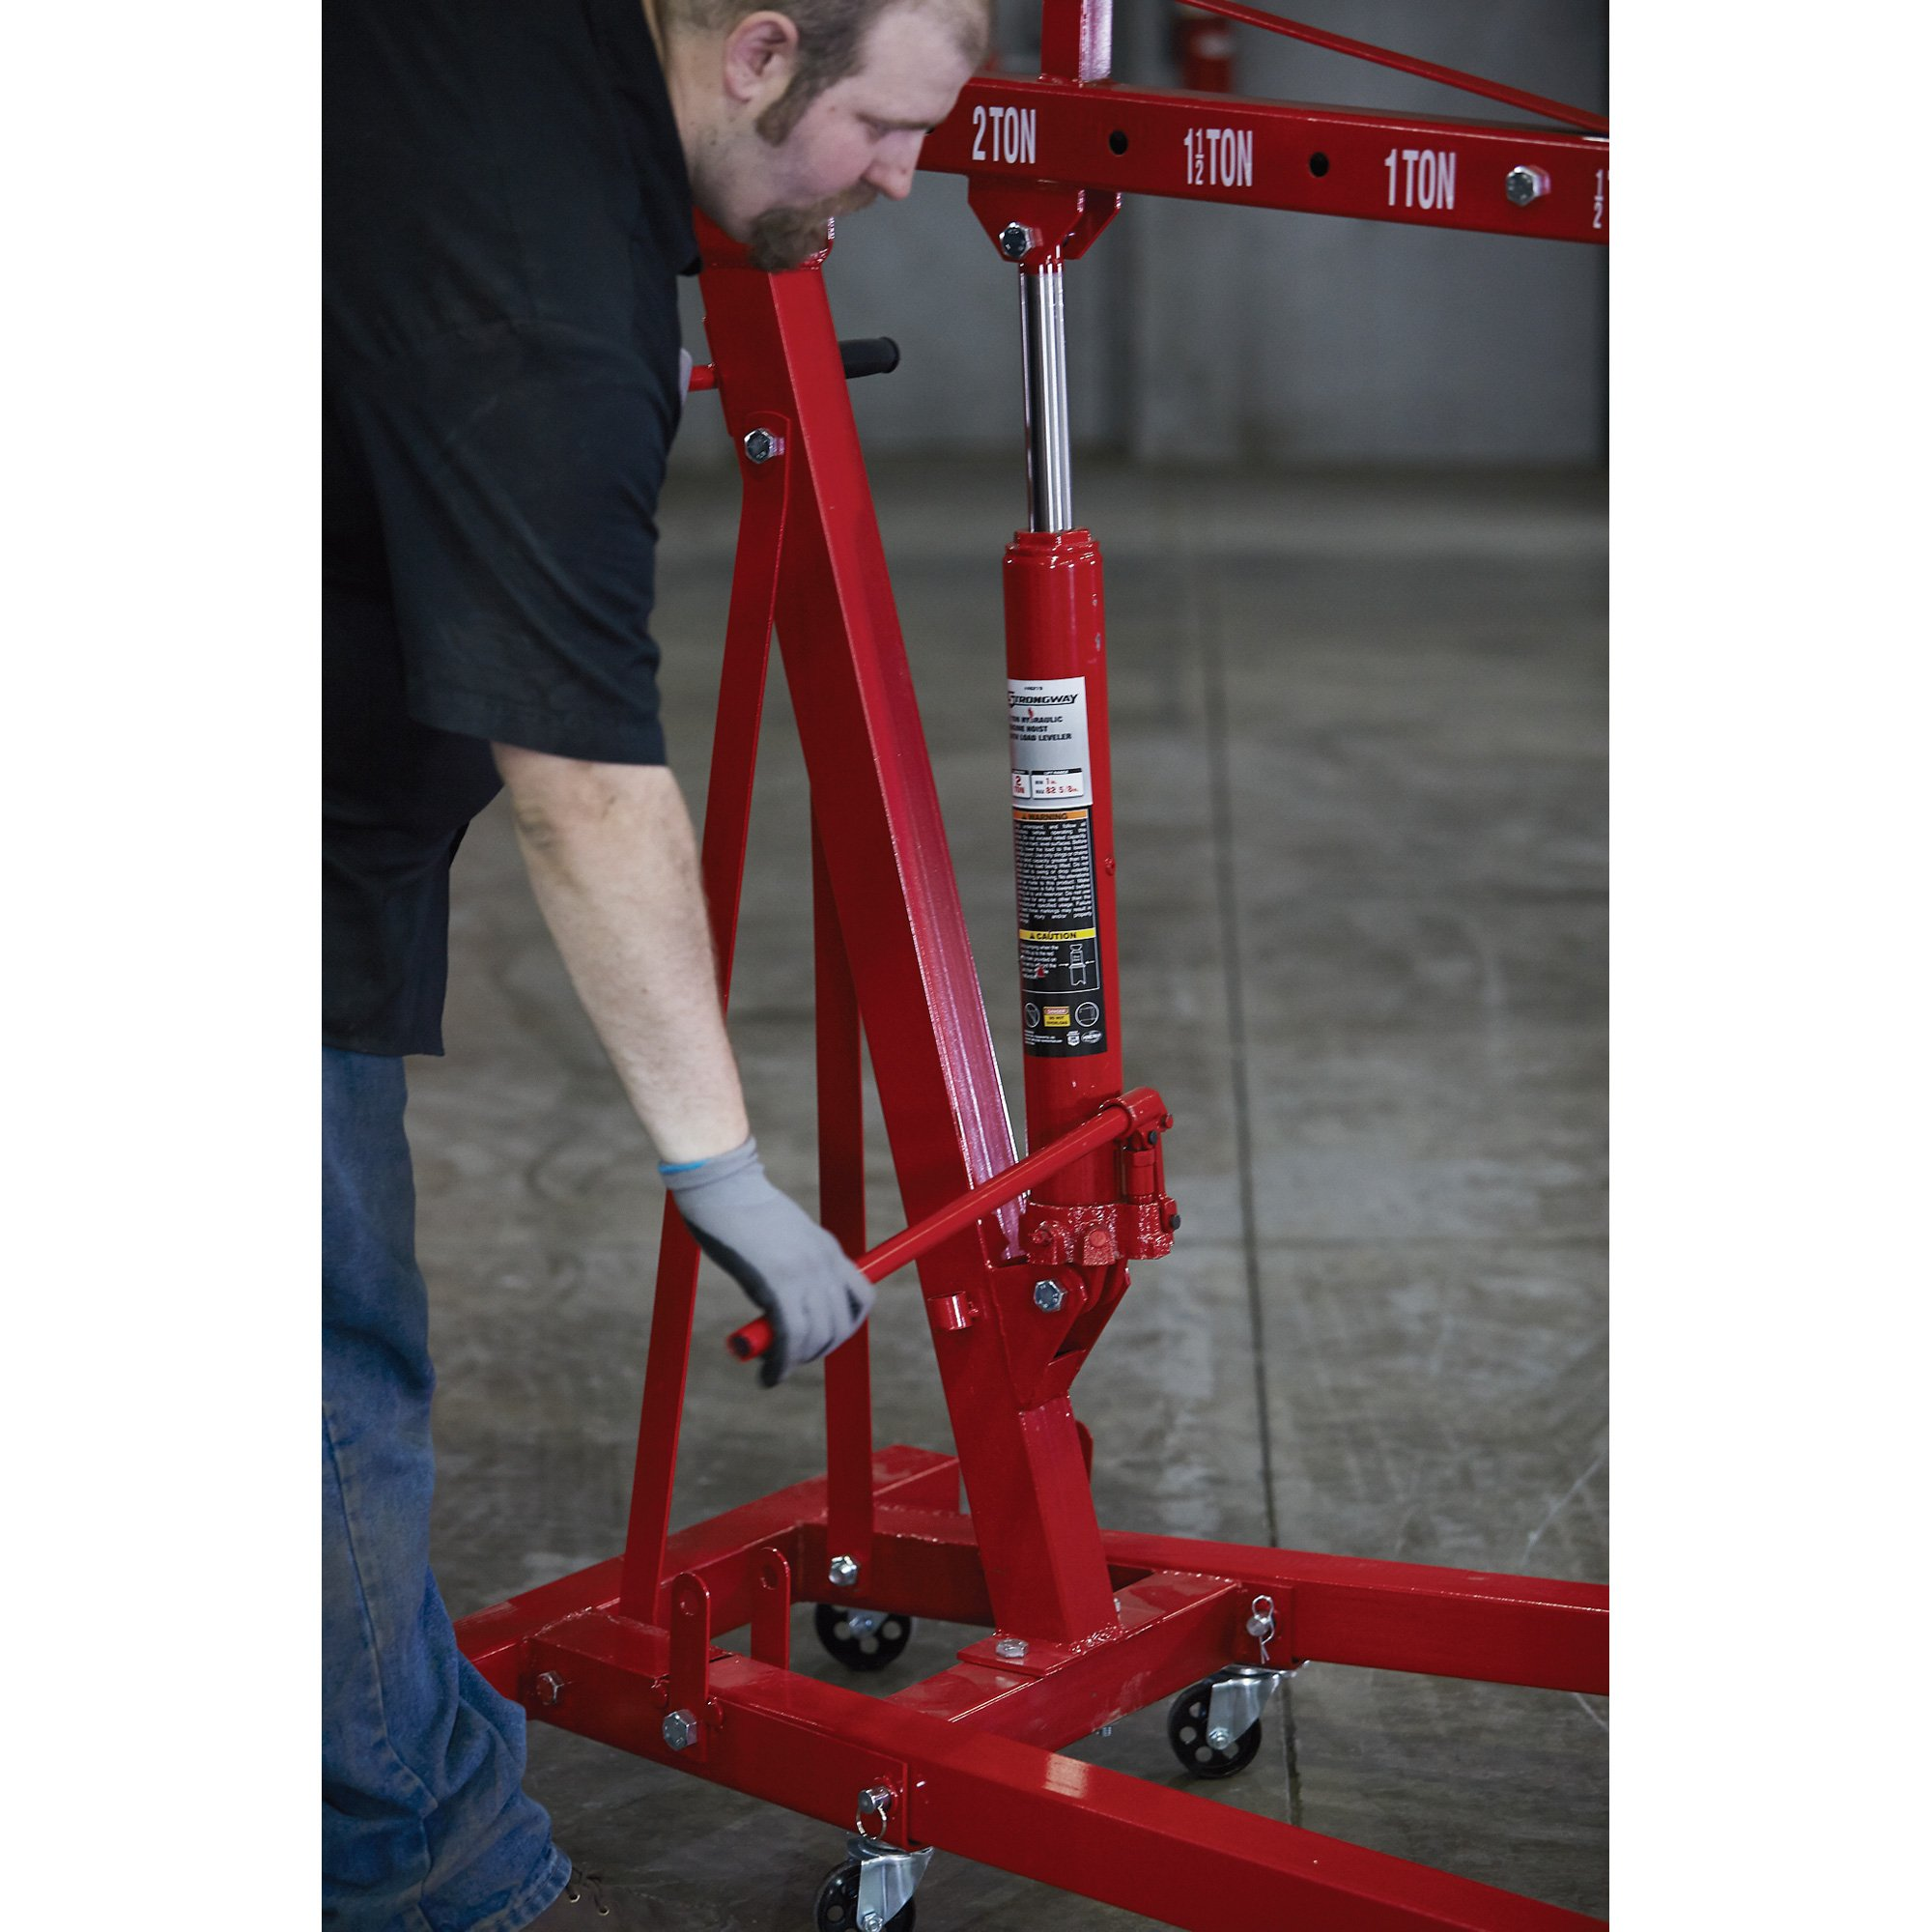 Strongway Hydraulic Engine Hoist with Load Leveler - 2-Ton Capacity, 1in.-82 5/8in. Lift Range by Strongway